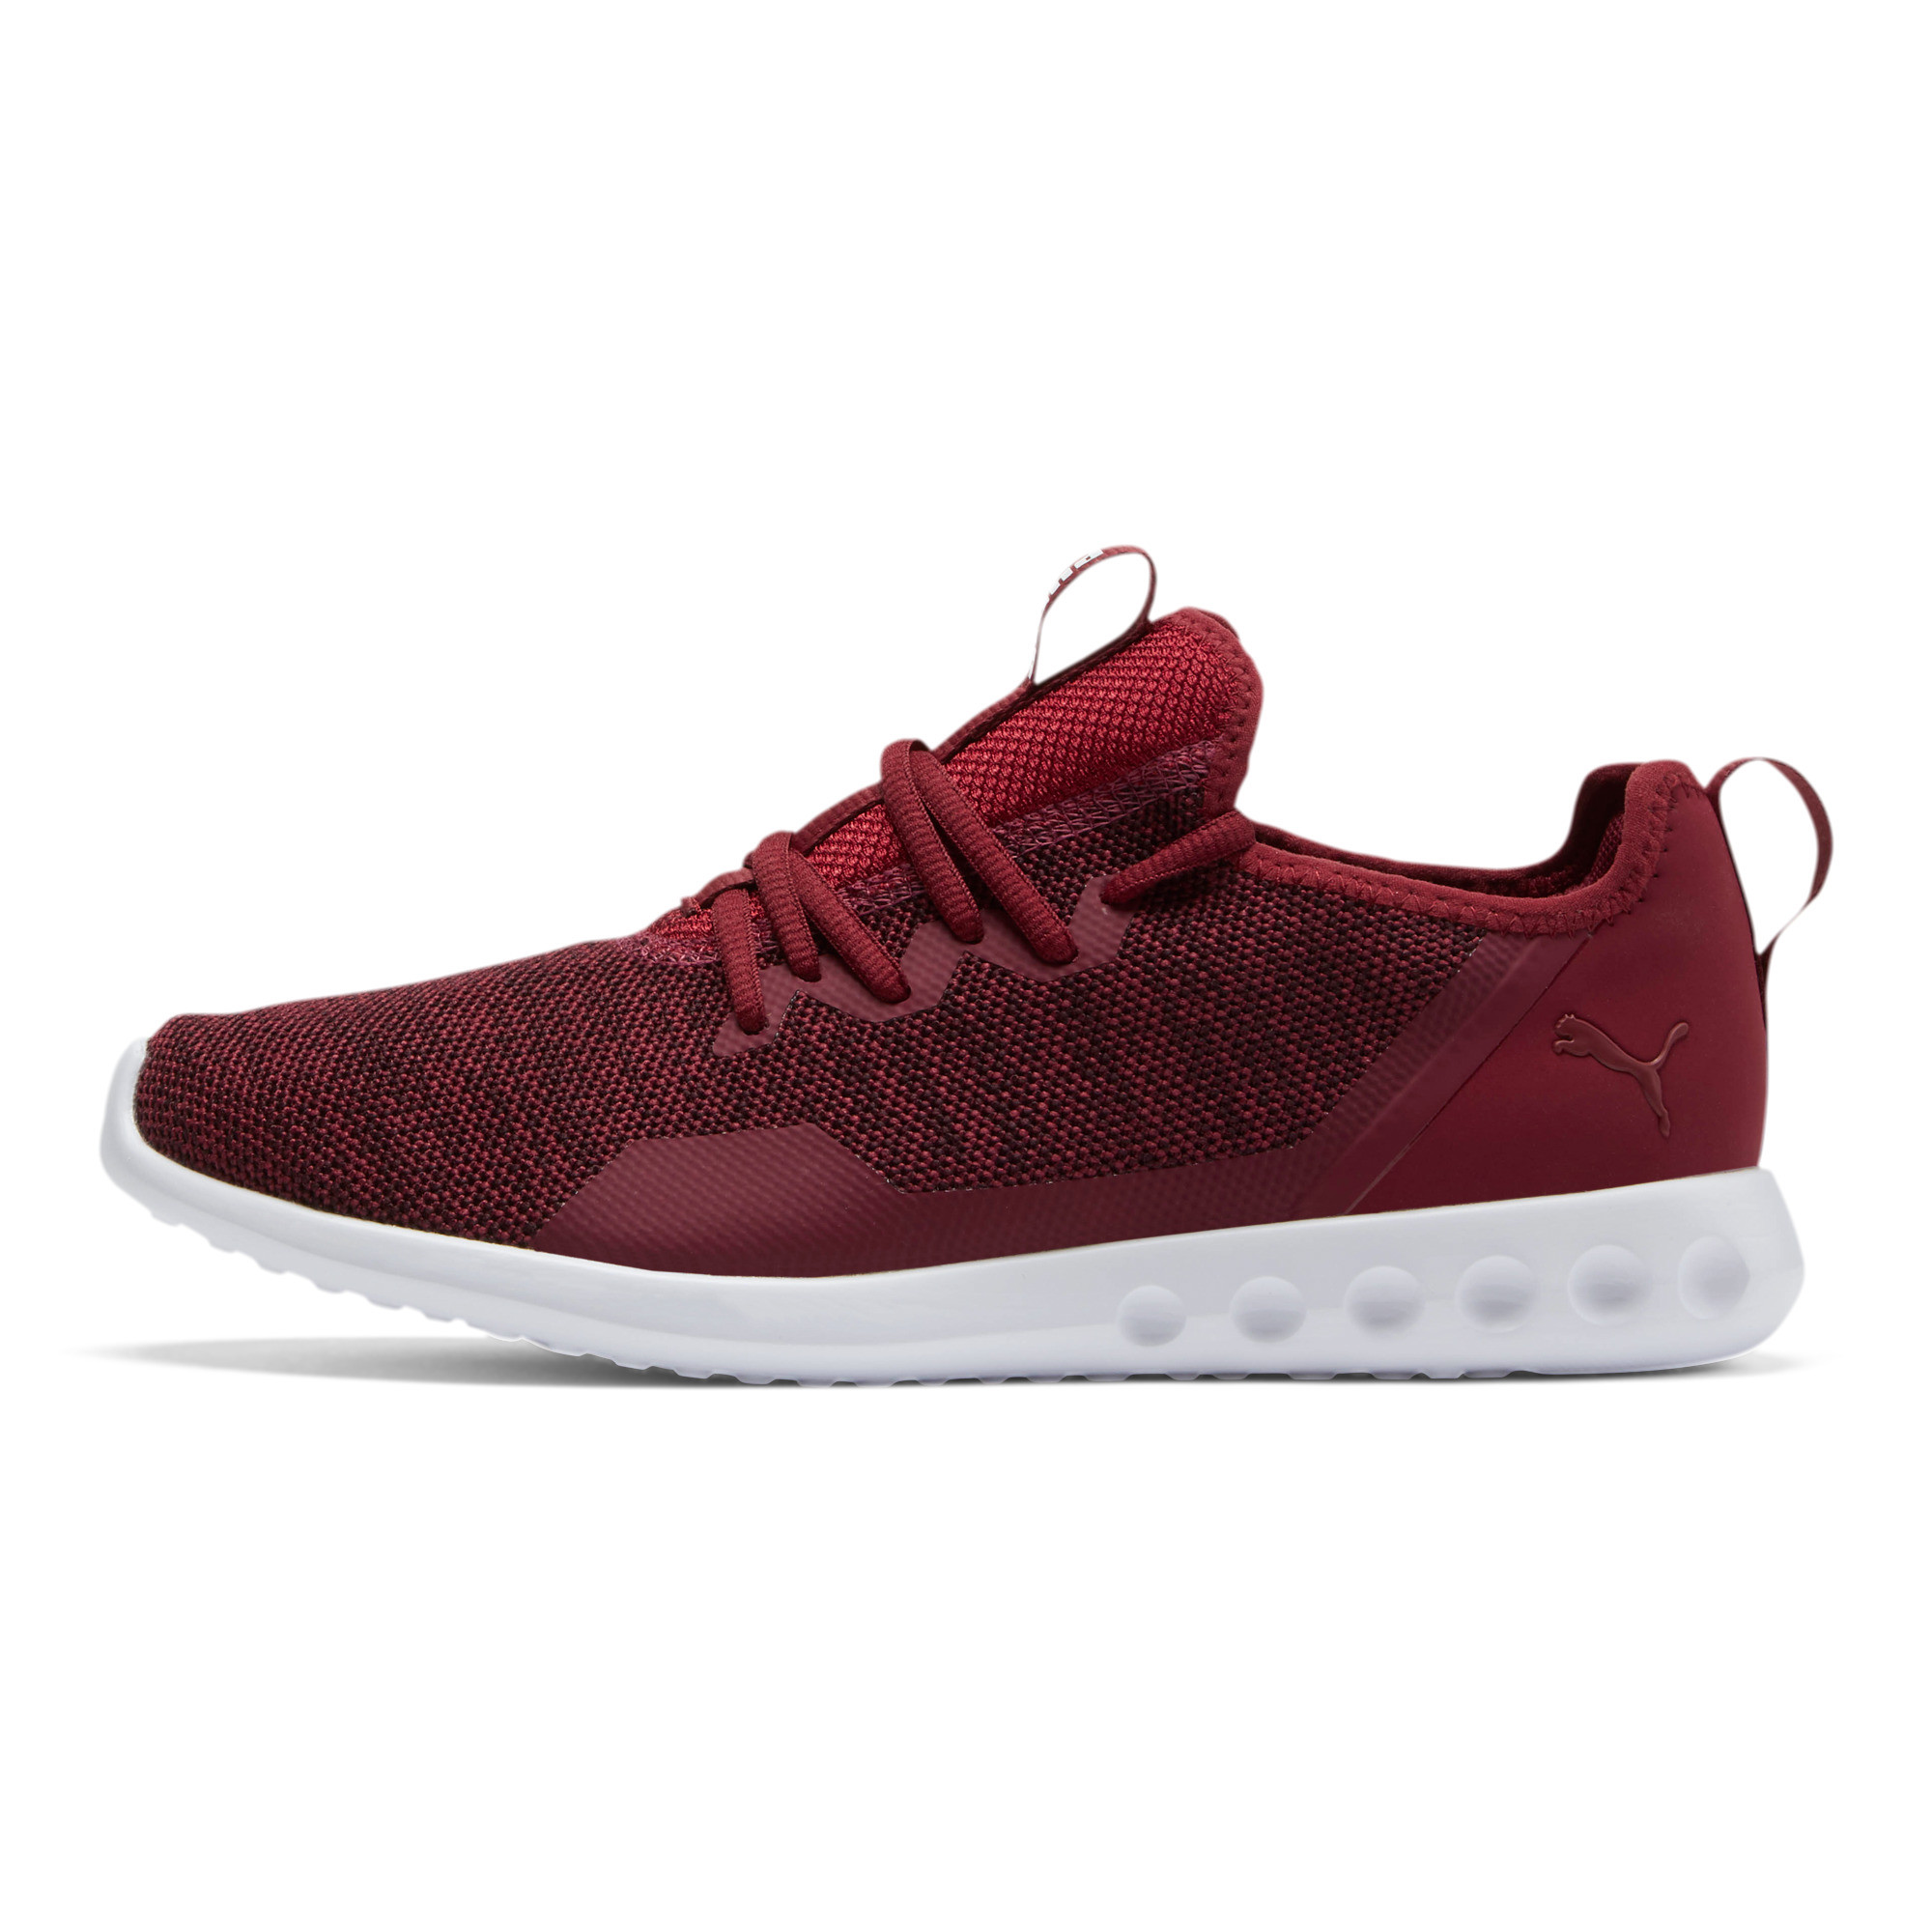 PUMA-Carson-2-X-Knit-Men-039-s-Running-Shoes-Men-Shoe-Running thumbnail 39